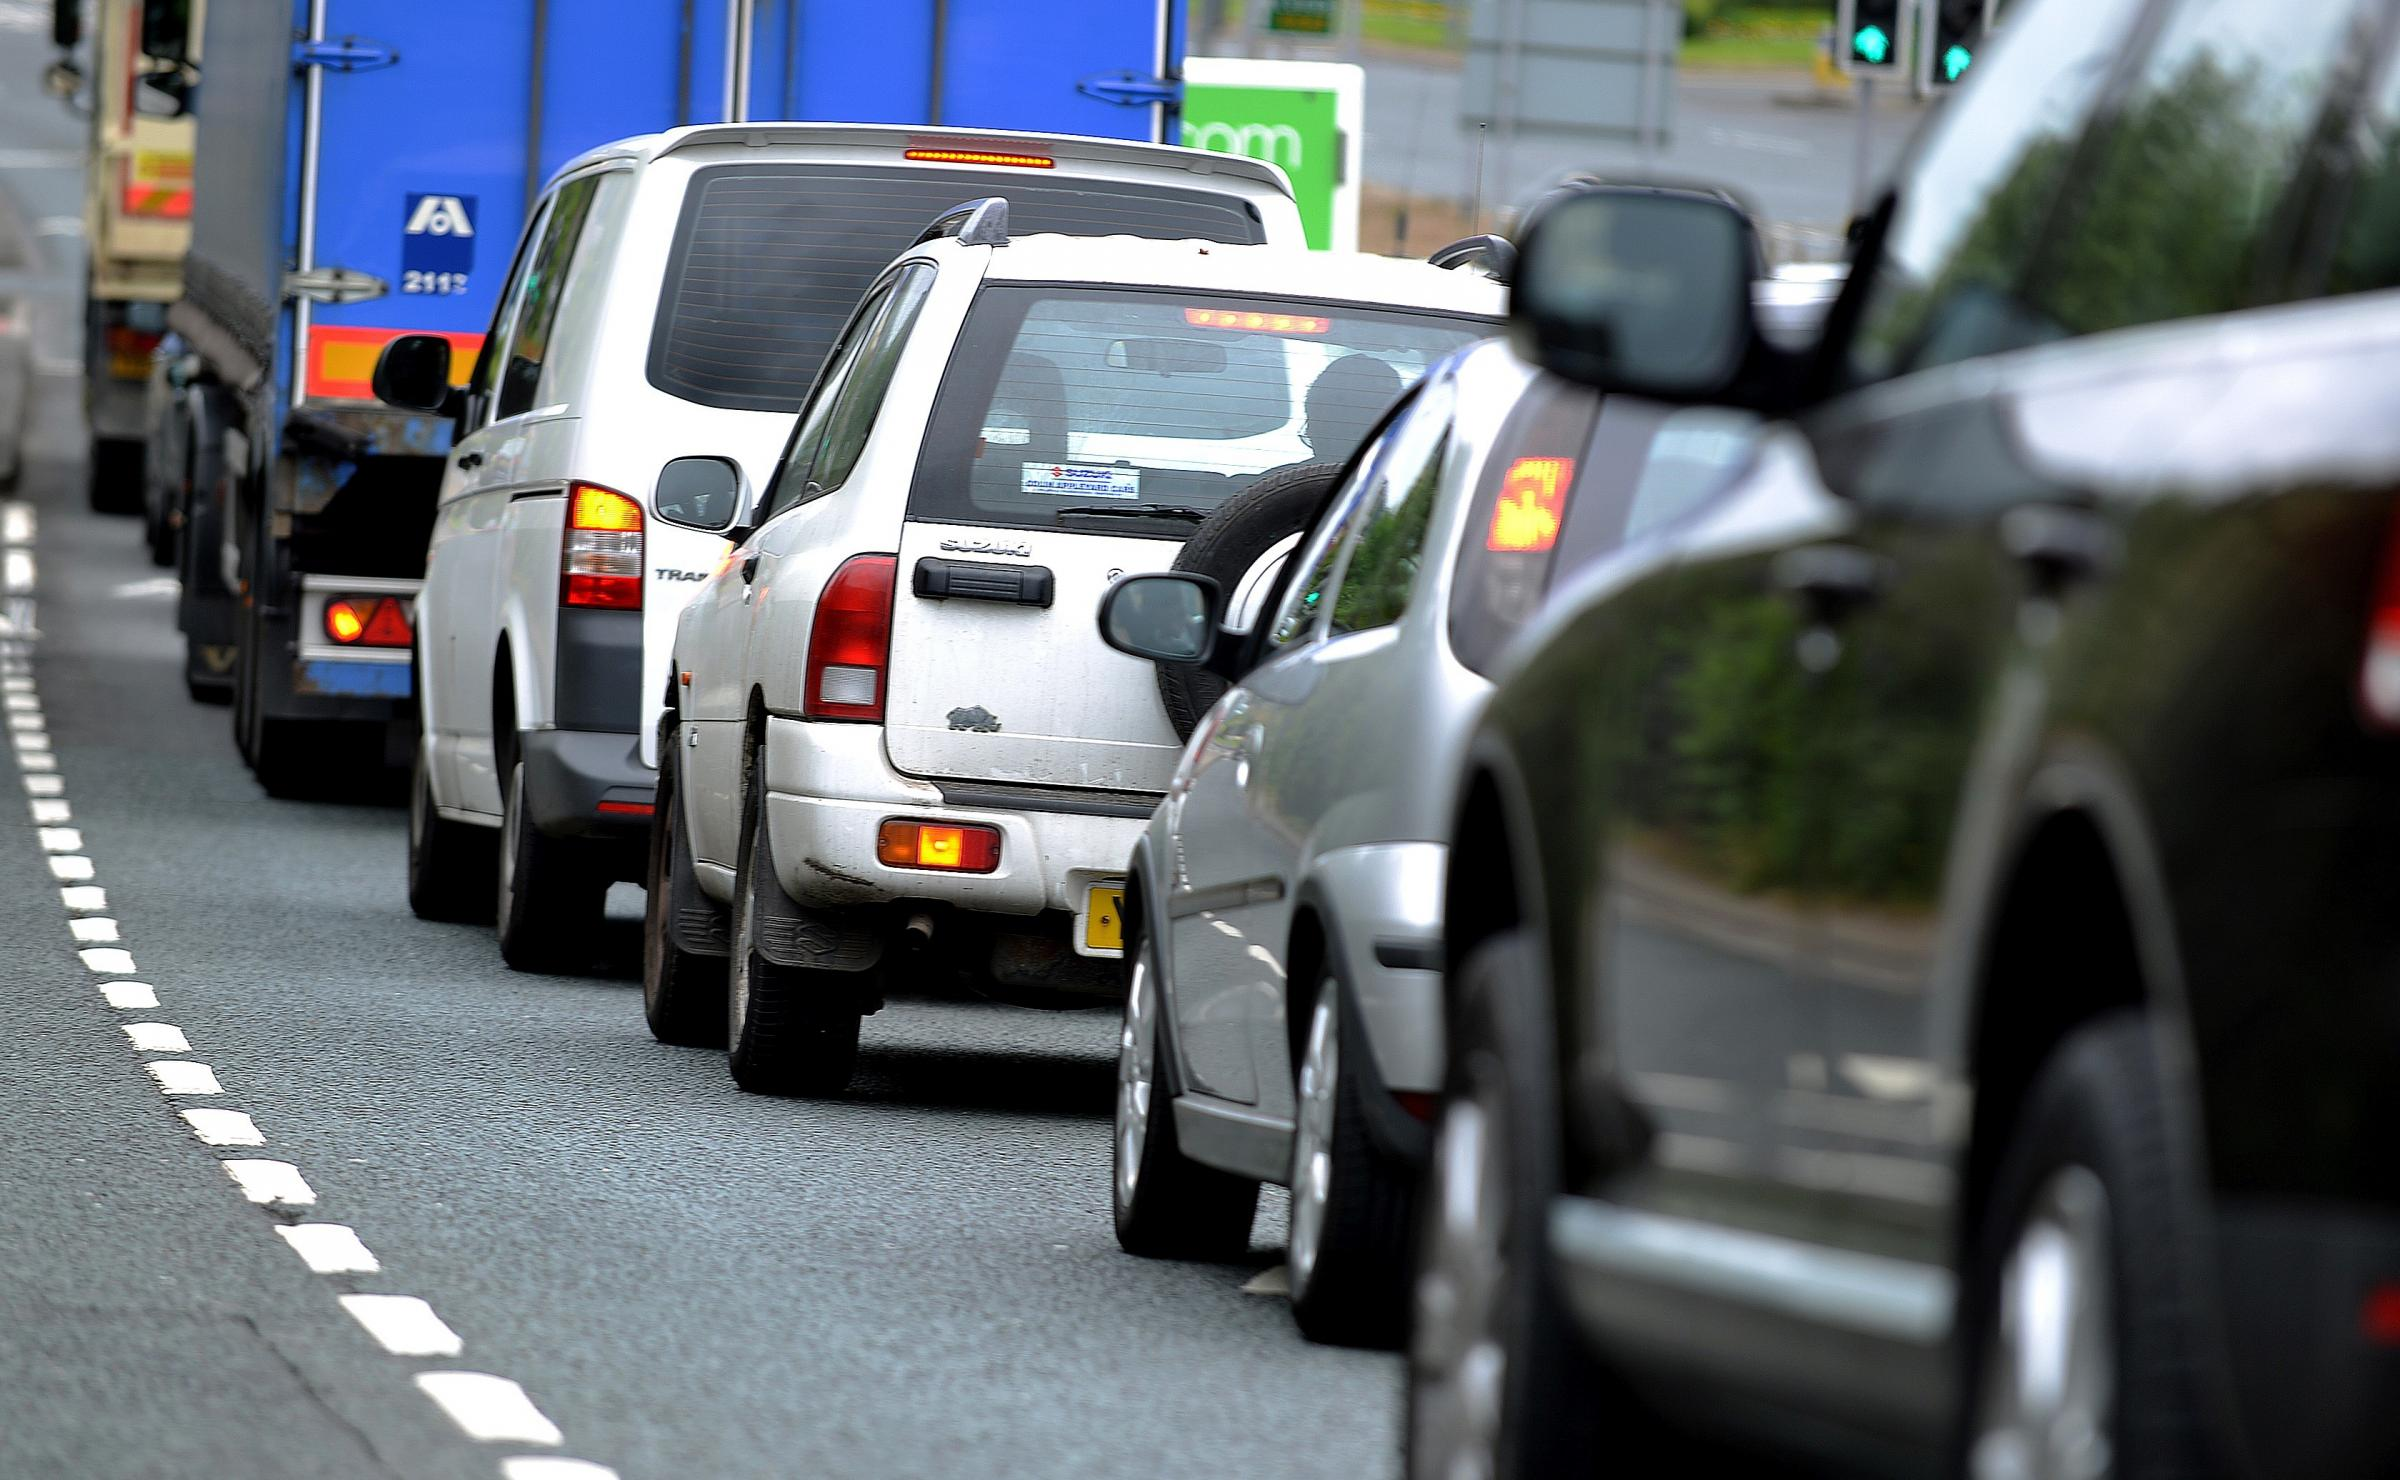 Road improvements could tackle congestion